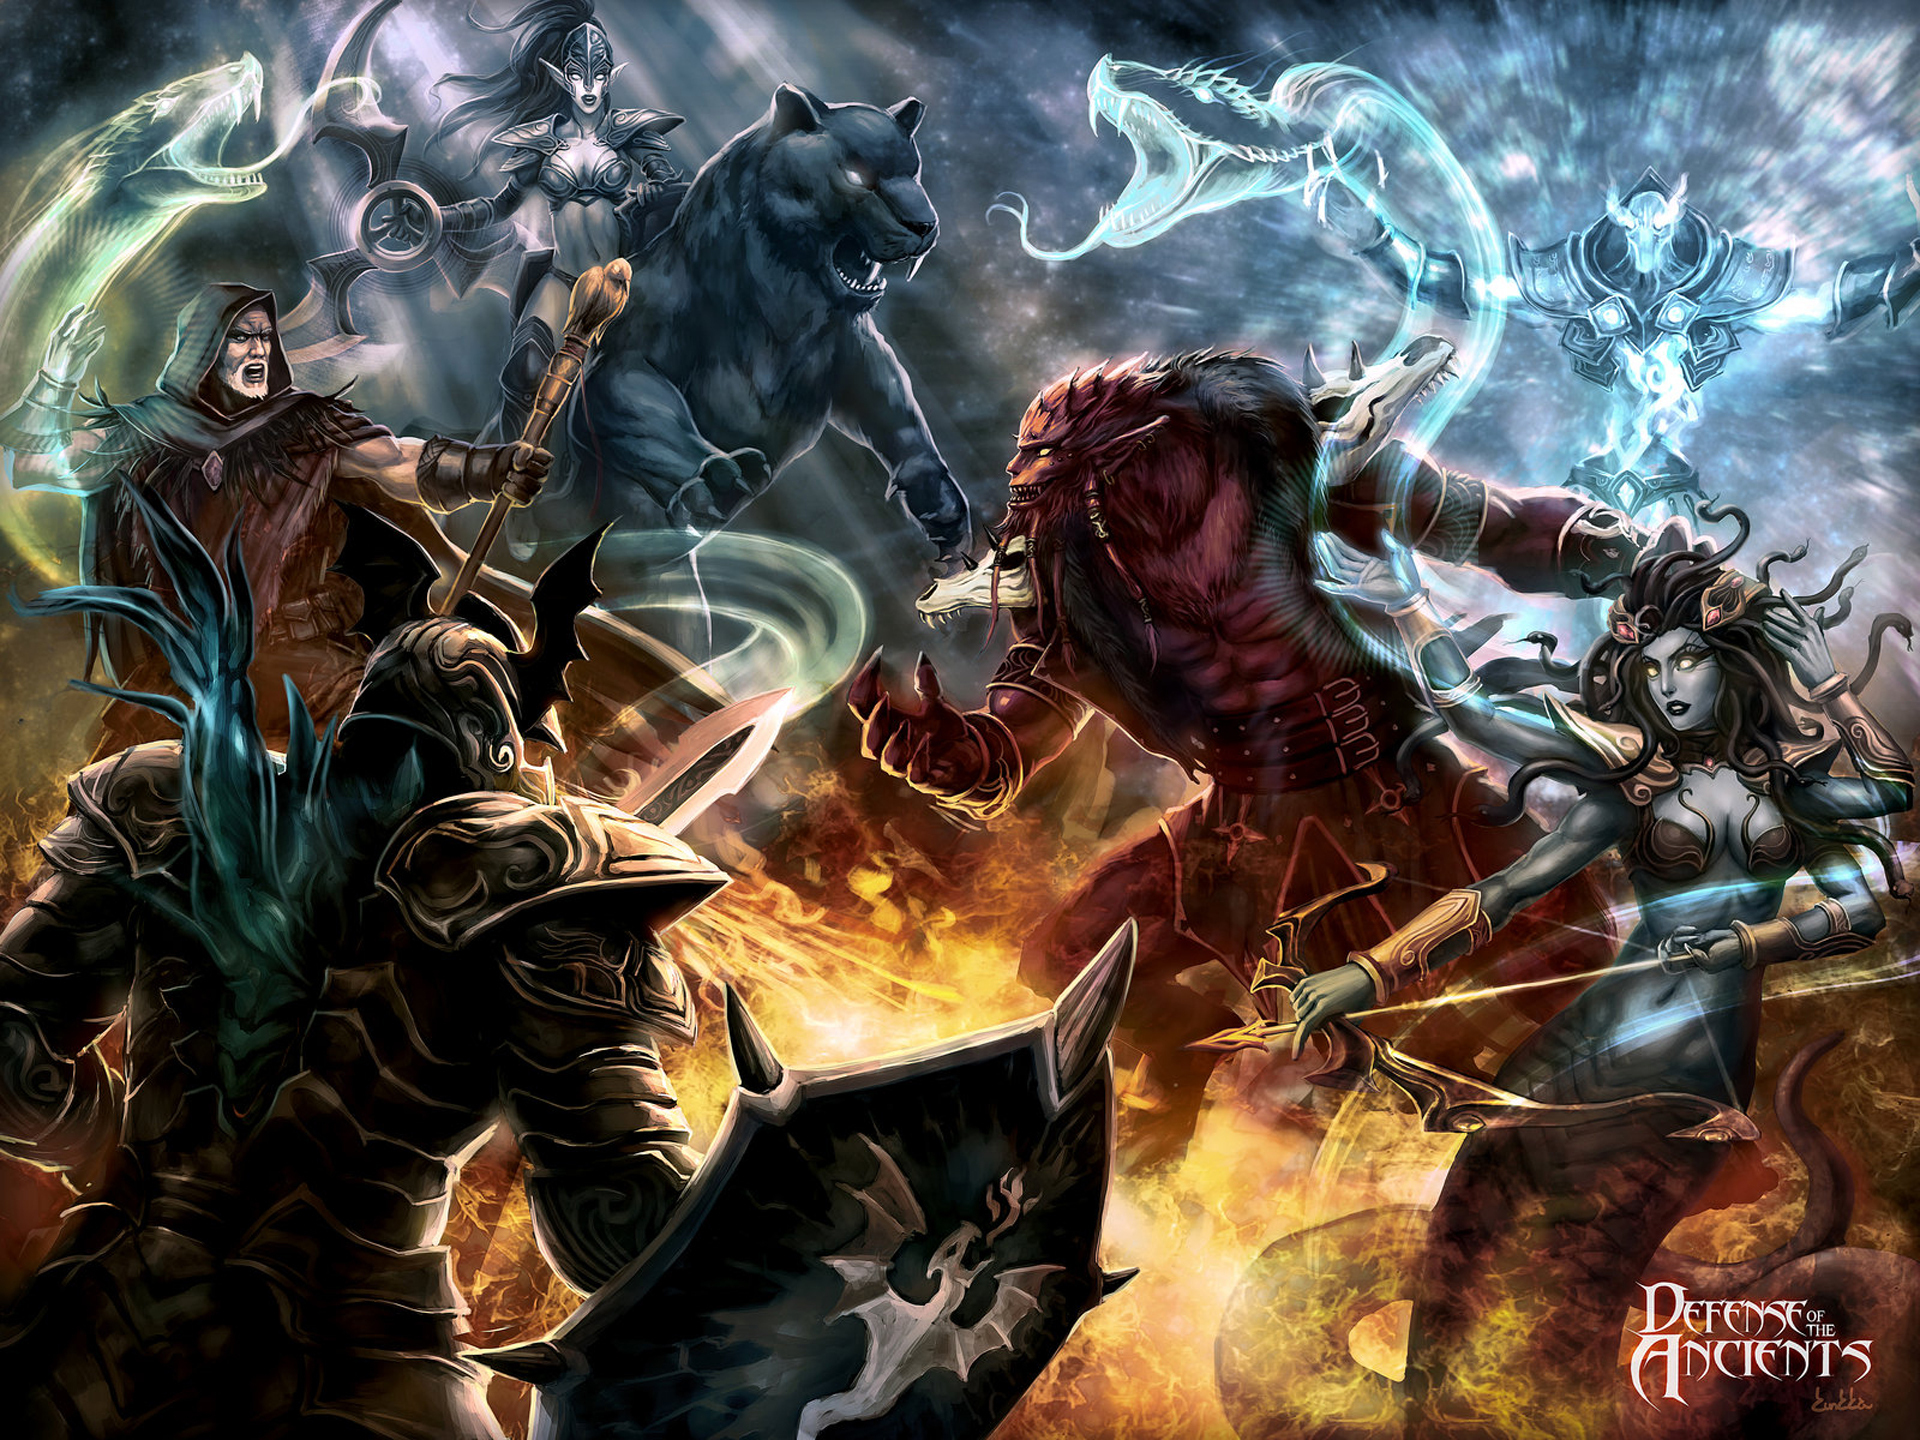 DotA Full HD Wallpaper And Background Image